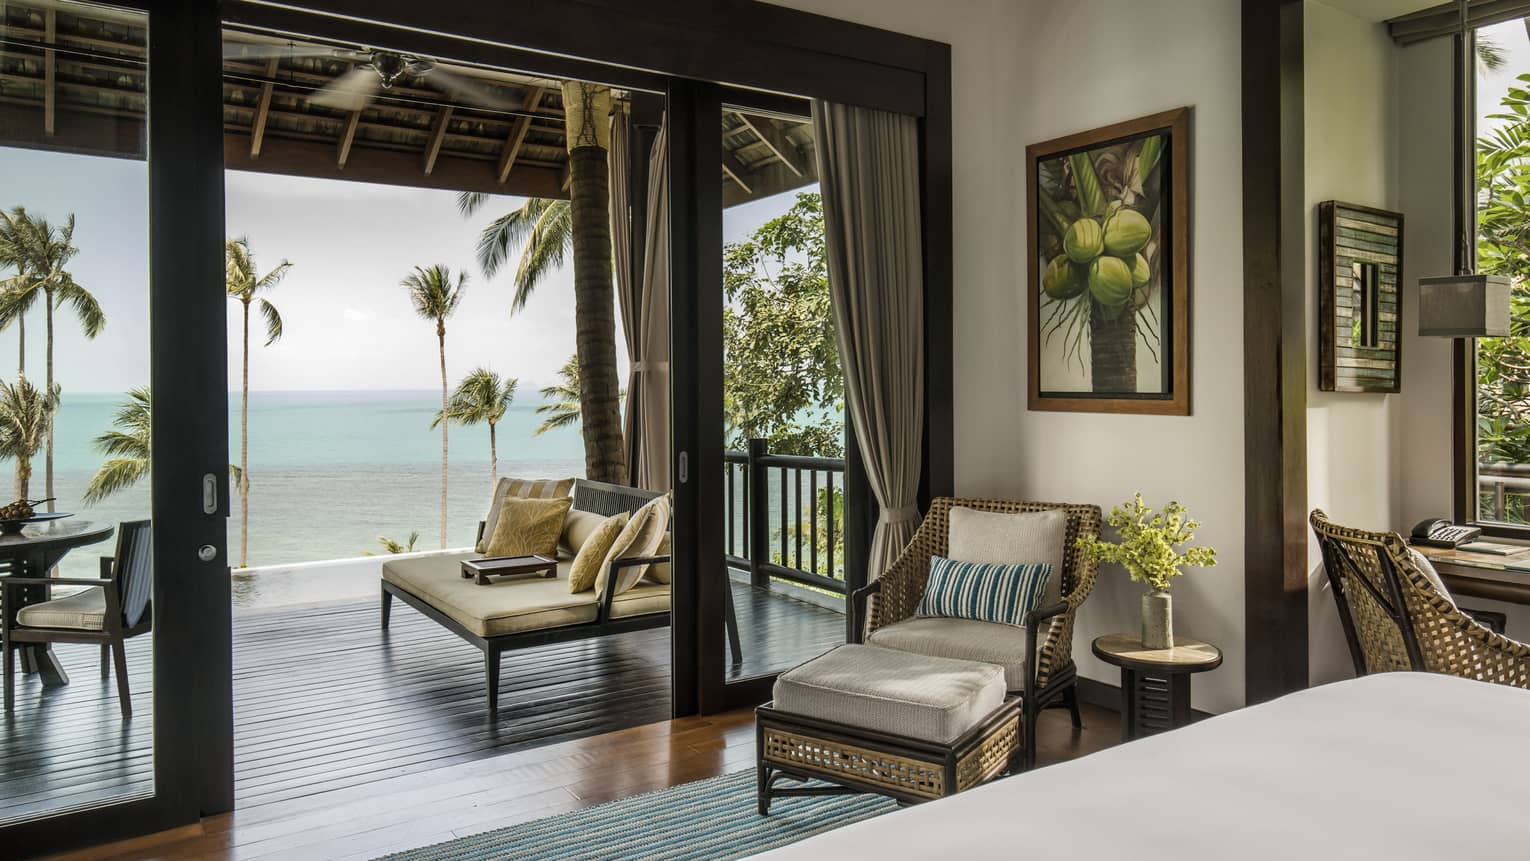 Villa bedroom with queen bed, rattan furniture and private beach access